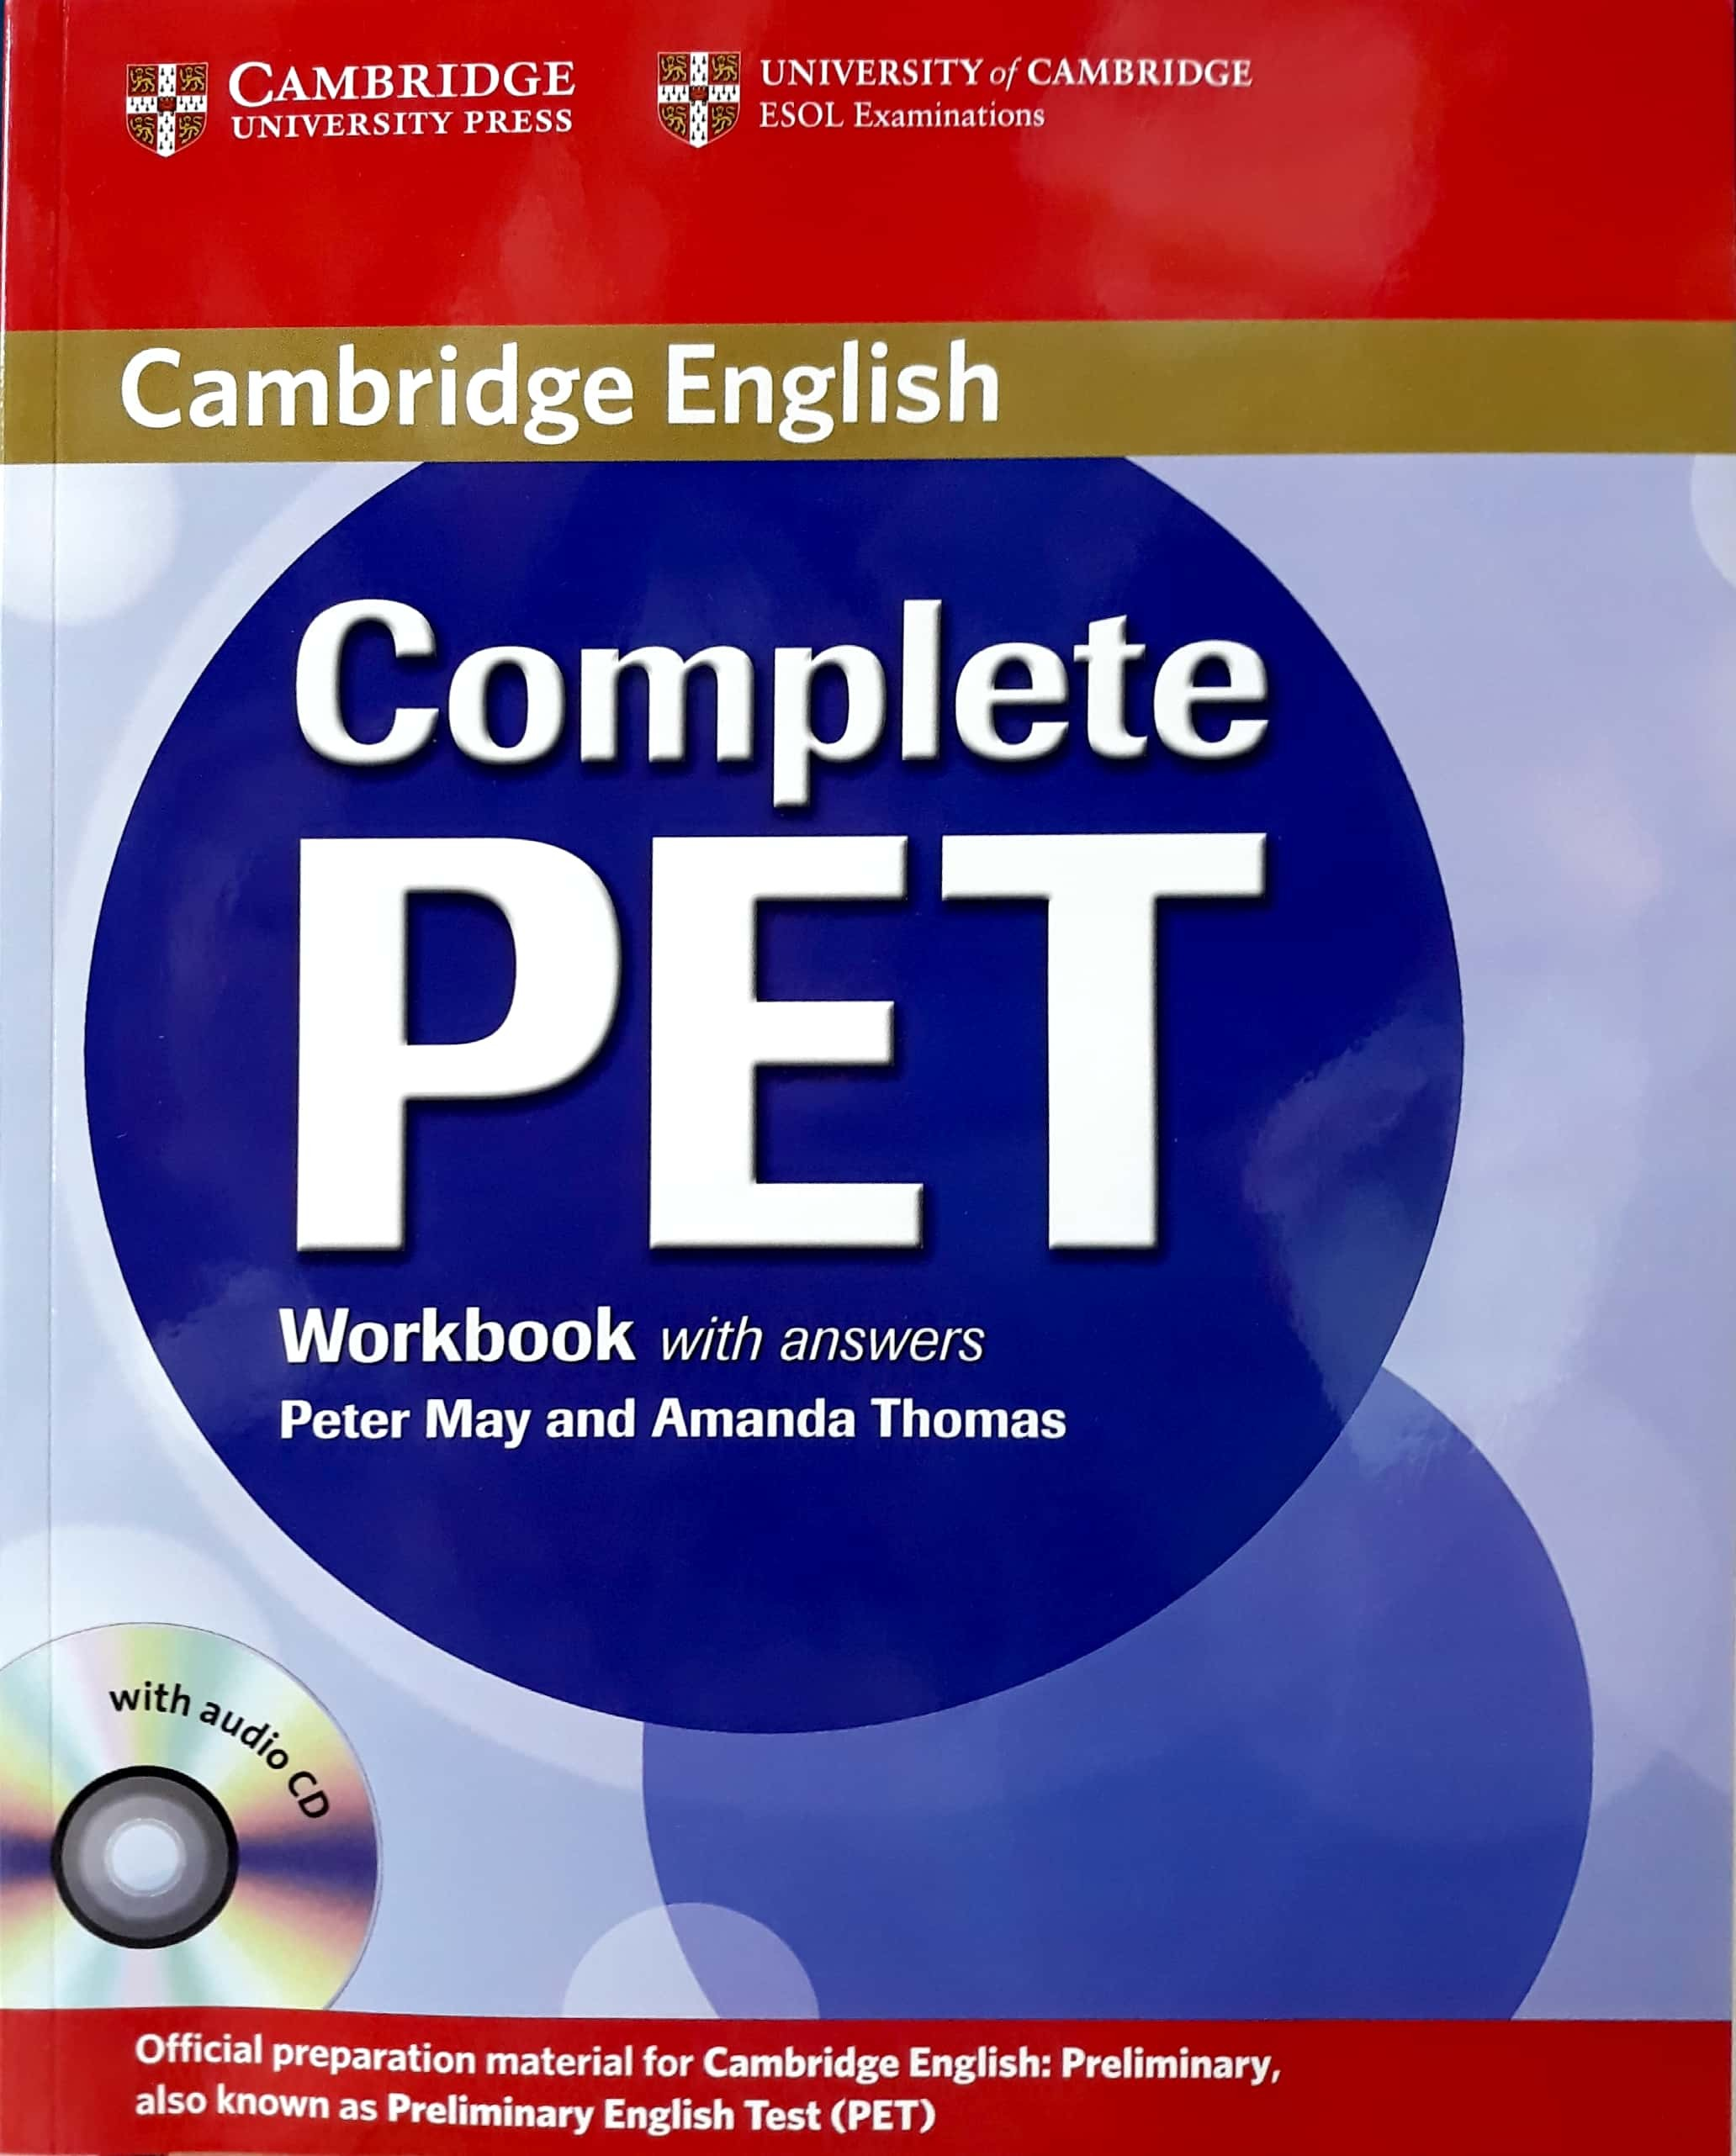 complete_pet_workbook_with_answers_with_audio_cd_1_2018_08_23_13_58_50